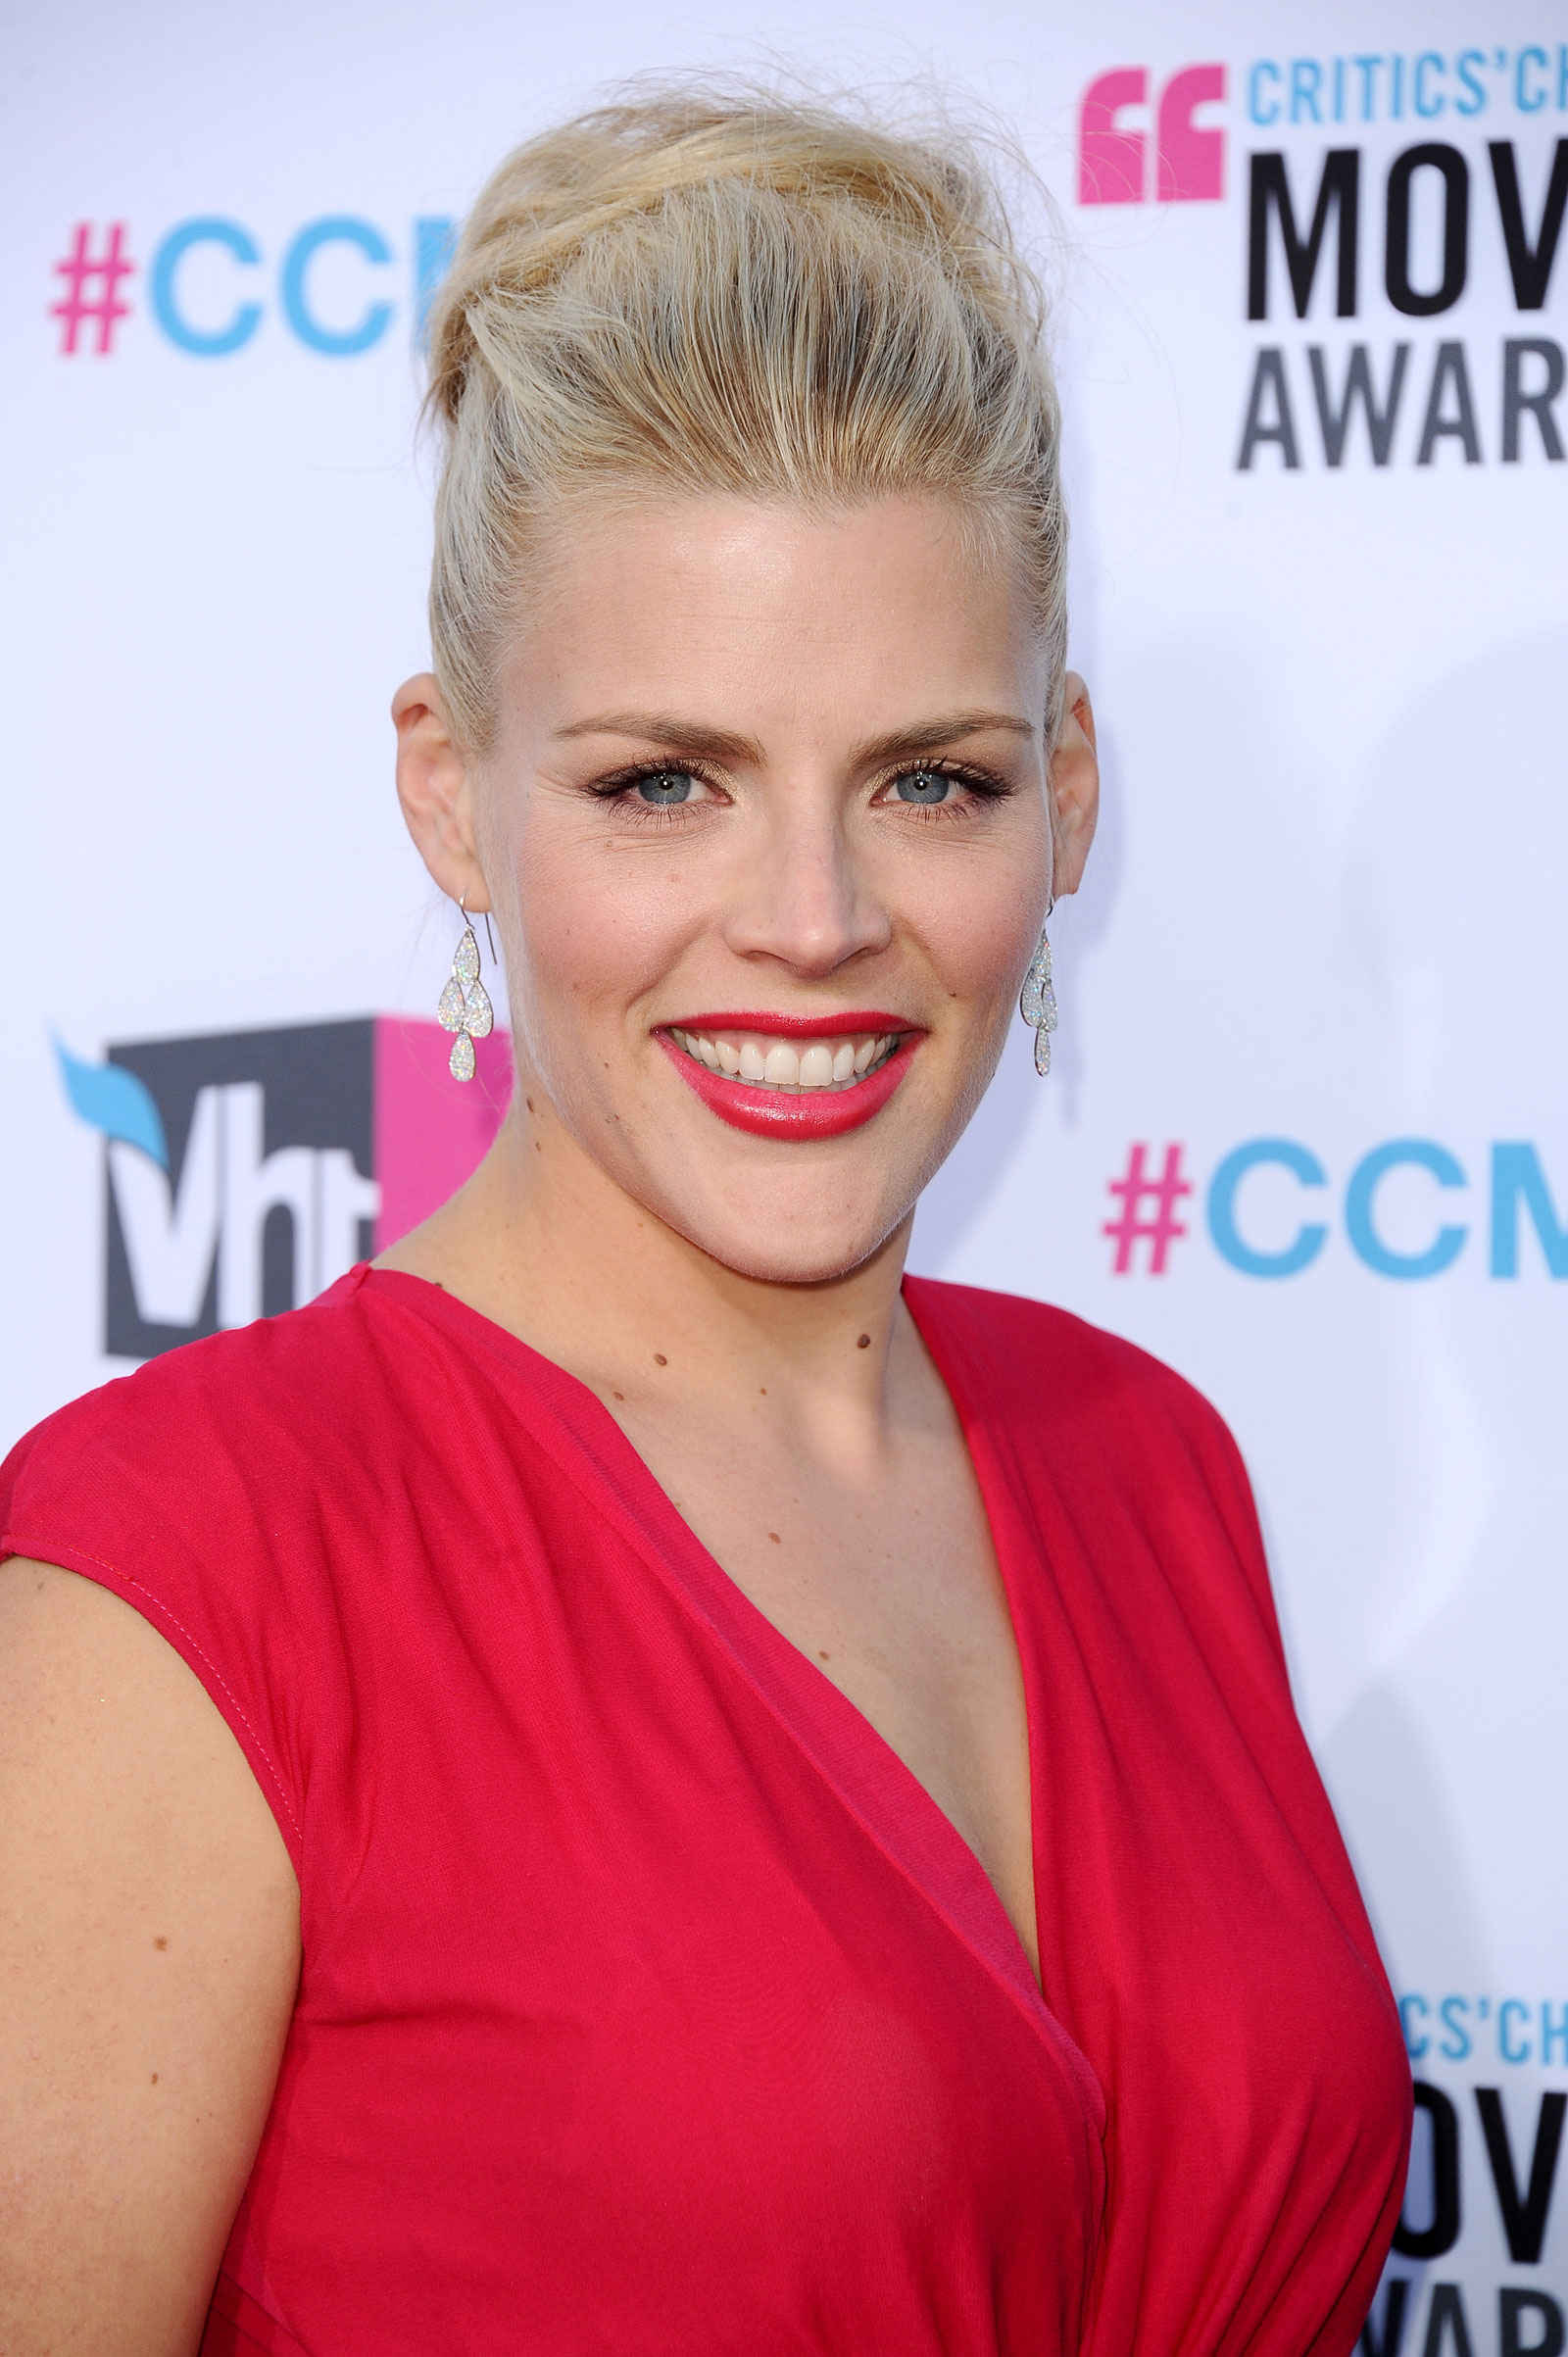 busy philipps oscarsbusy philipps кинопоиск, busy philipps how i met your mother, busy philipps interview, busy philipps pronunciation, busy philipps ben affleck, busy philipps instagram, busy philipps michelle williams, busy philipps courteney cox, busy philipps height weight measurements, busy philipps husband, busy philipps oscars